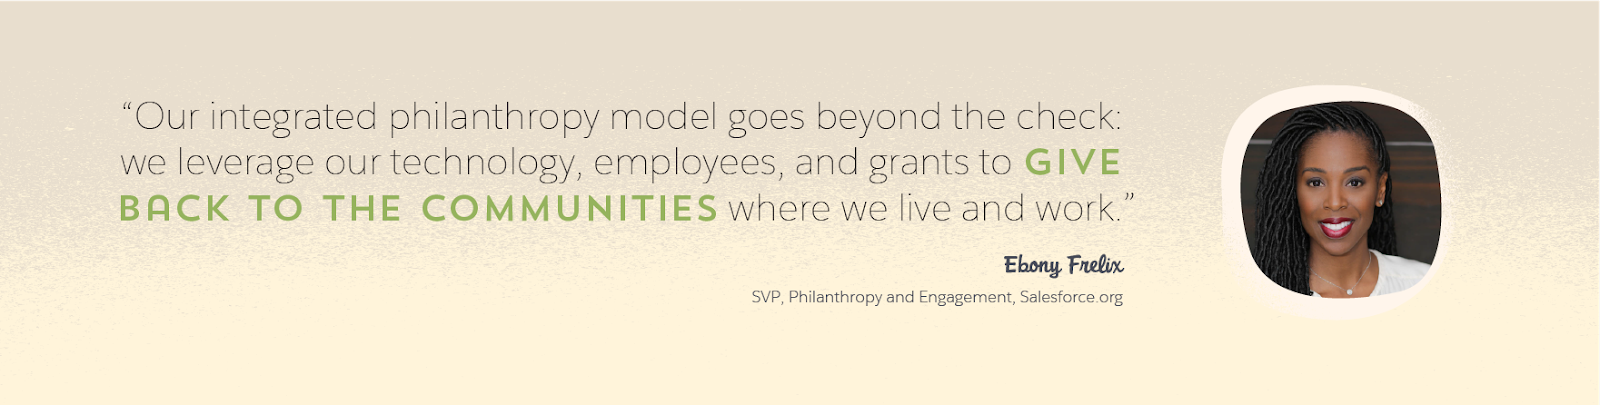 "Graphic featuring Ebony Frelix, Salesforce.org SVP, Philanthropy and Engagement, with a quote from her: ""Our integrated philanthropy model goes beyond the check: we leverage our technology, employees, and grants to give back to the communities where we live and work."""